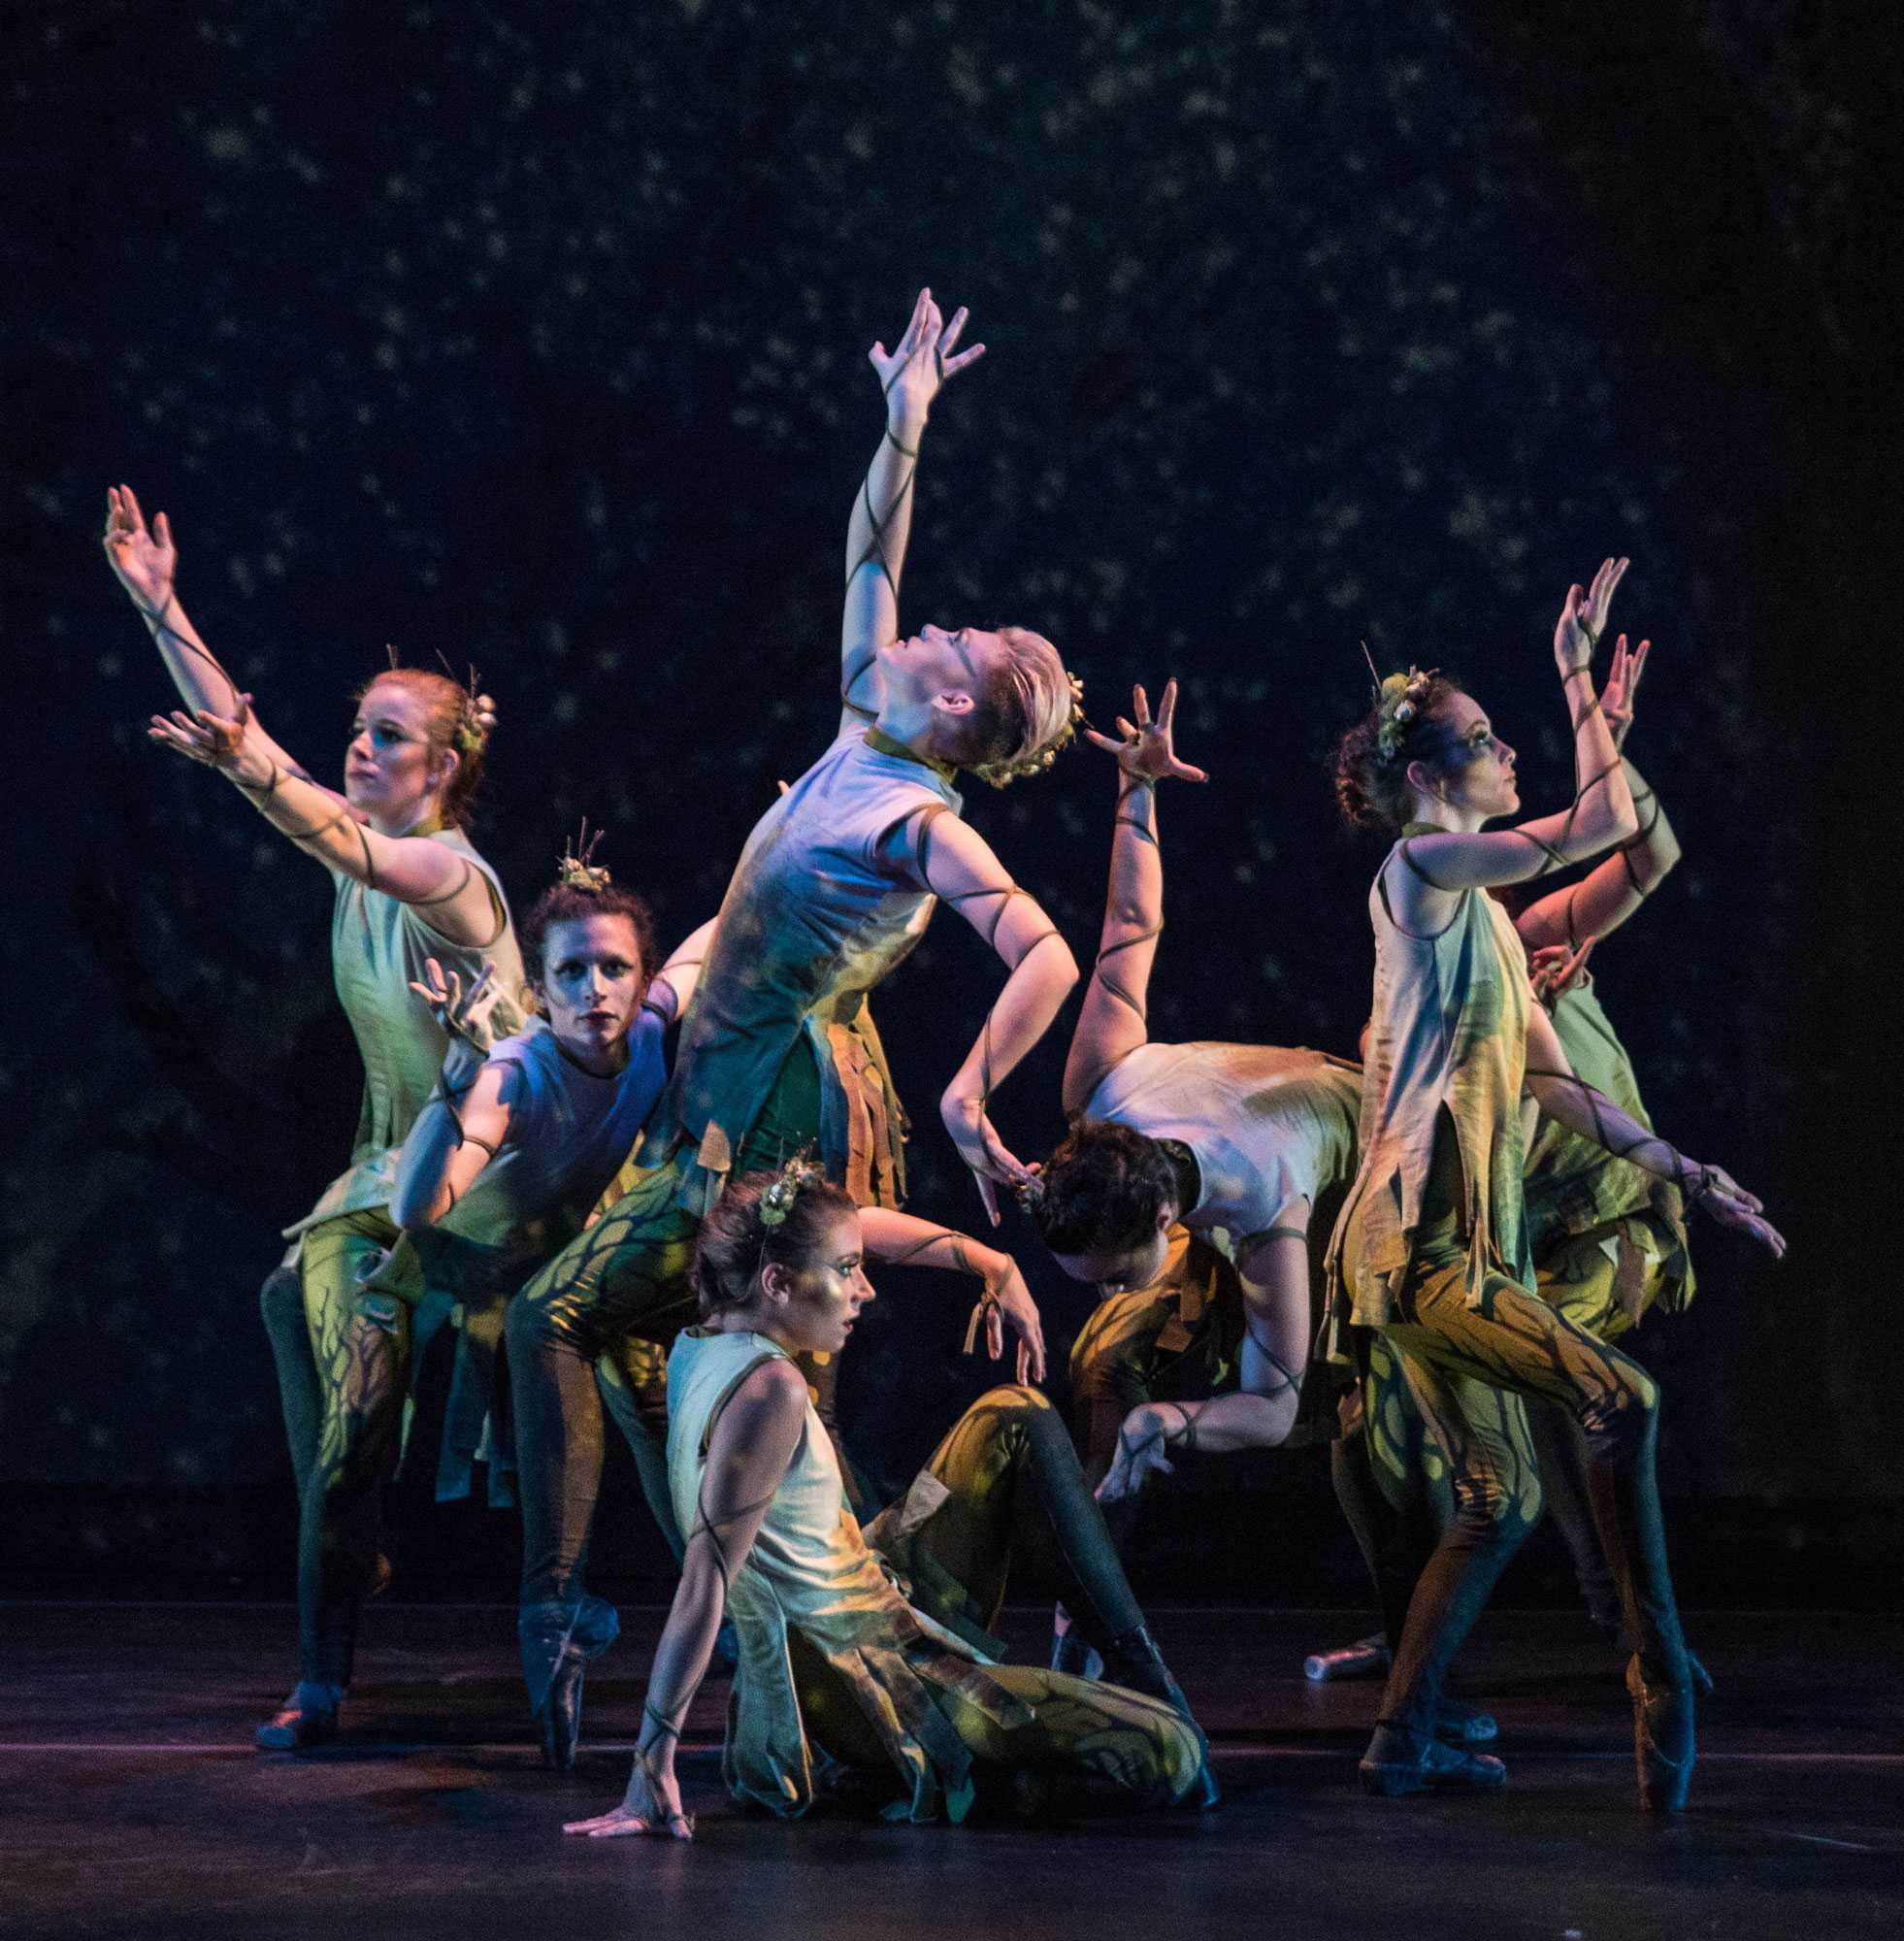 UnderStory is the title of an original work choreographed in spring 2018 by Regina Gulick, senior lecturer in dance studies at Appalachian State University. Her cast of student dancers included, from left to right, Ashley Holliday, Amanda Mason, Lexi Ovenden, Lyndsey Porter, Elise Staub, Bronwyn Weismiller, and Annie Young.